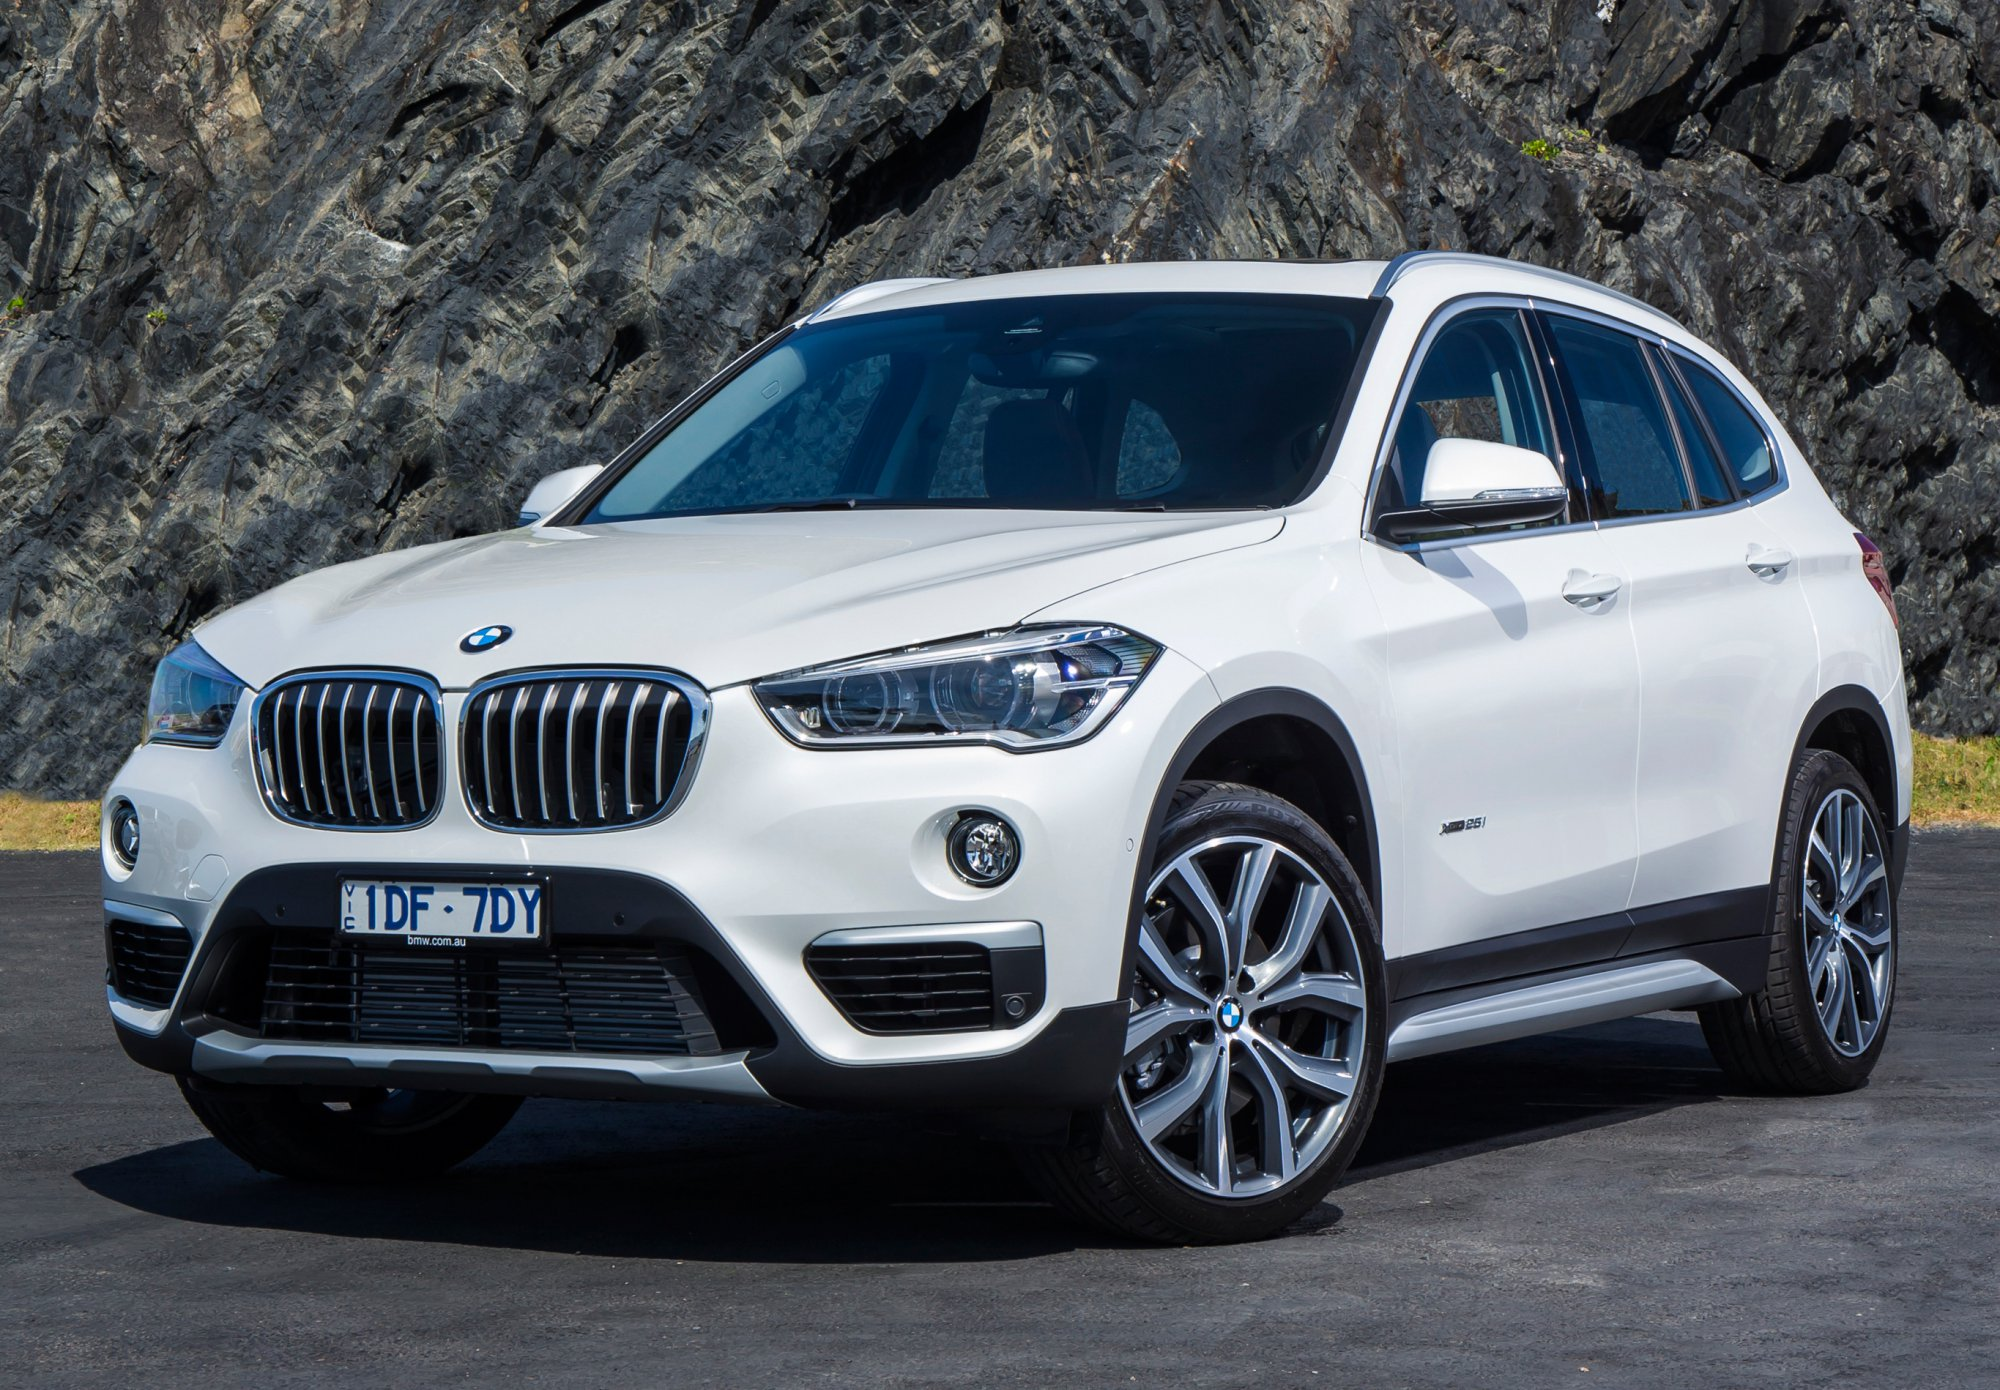 2017-bmw-x1-xdrive25i-x-line-03 Marvelous Bmw Snap In Adapter Z10 Cars Trend